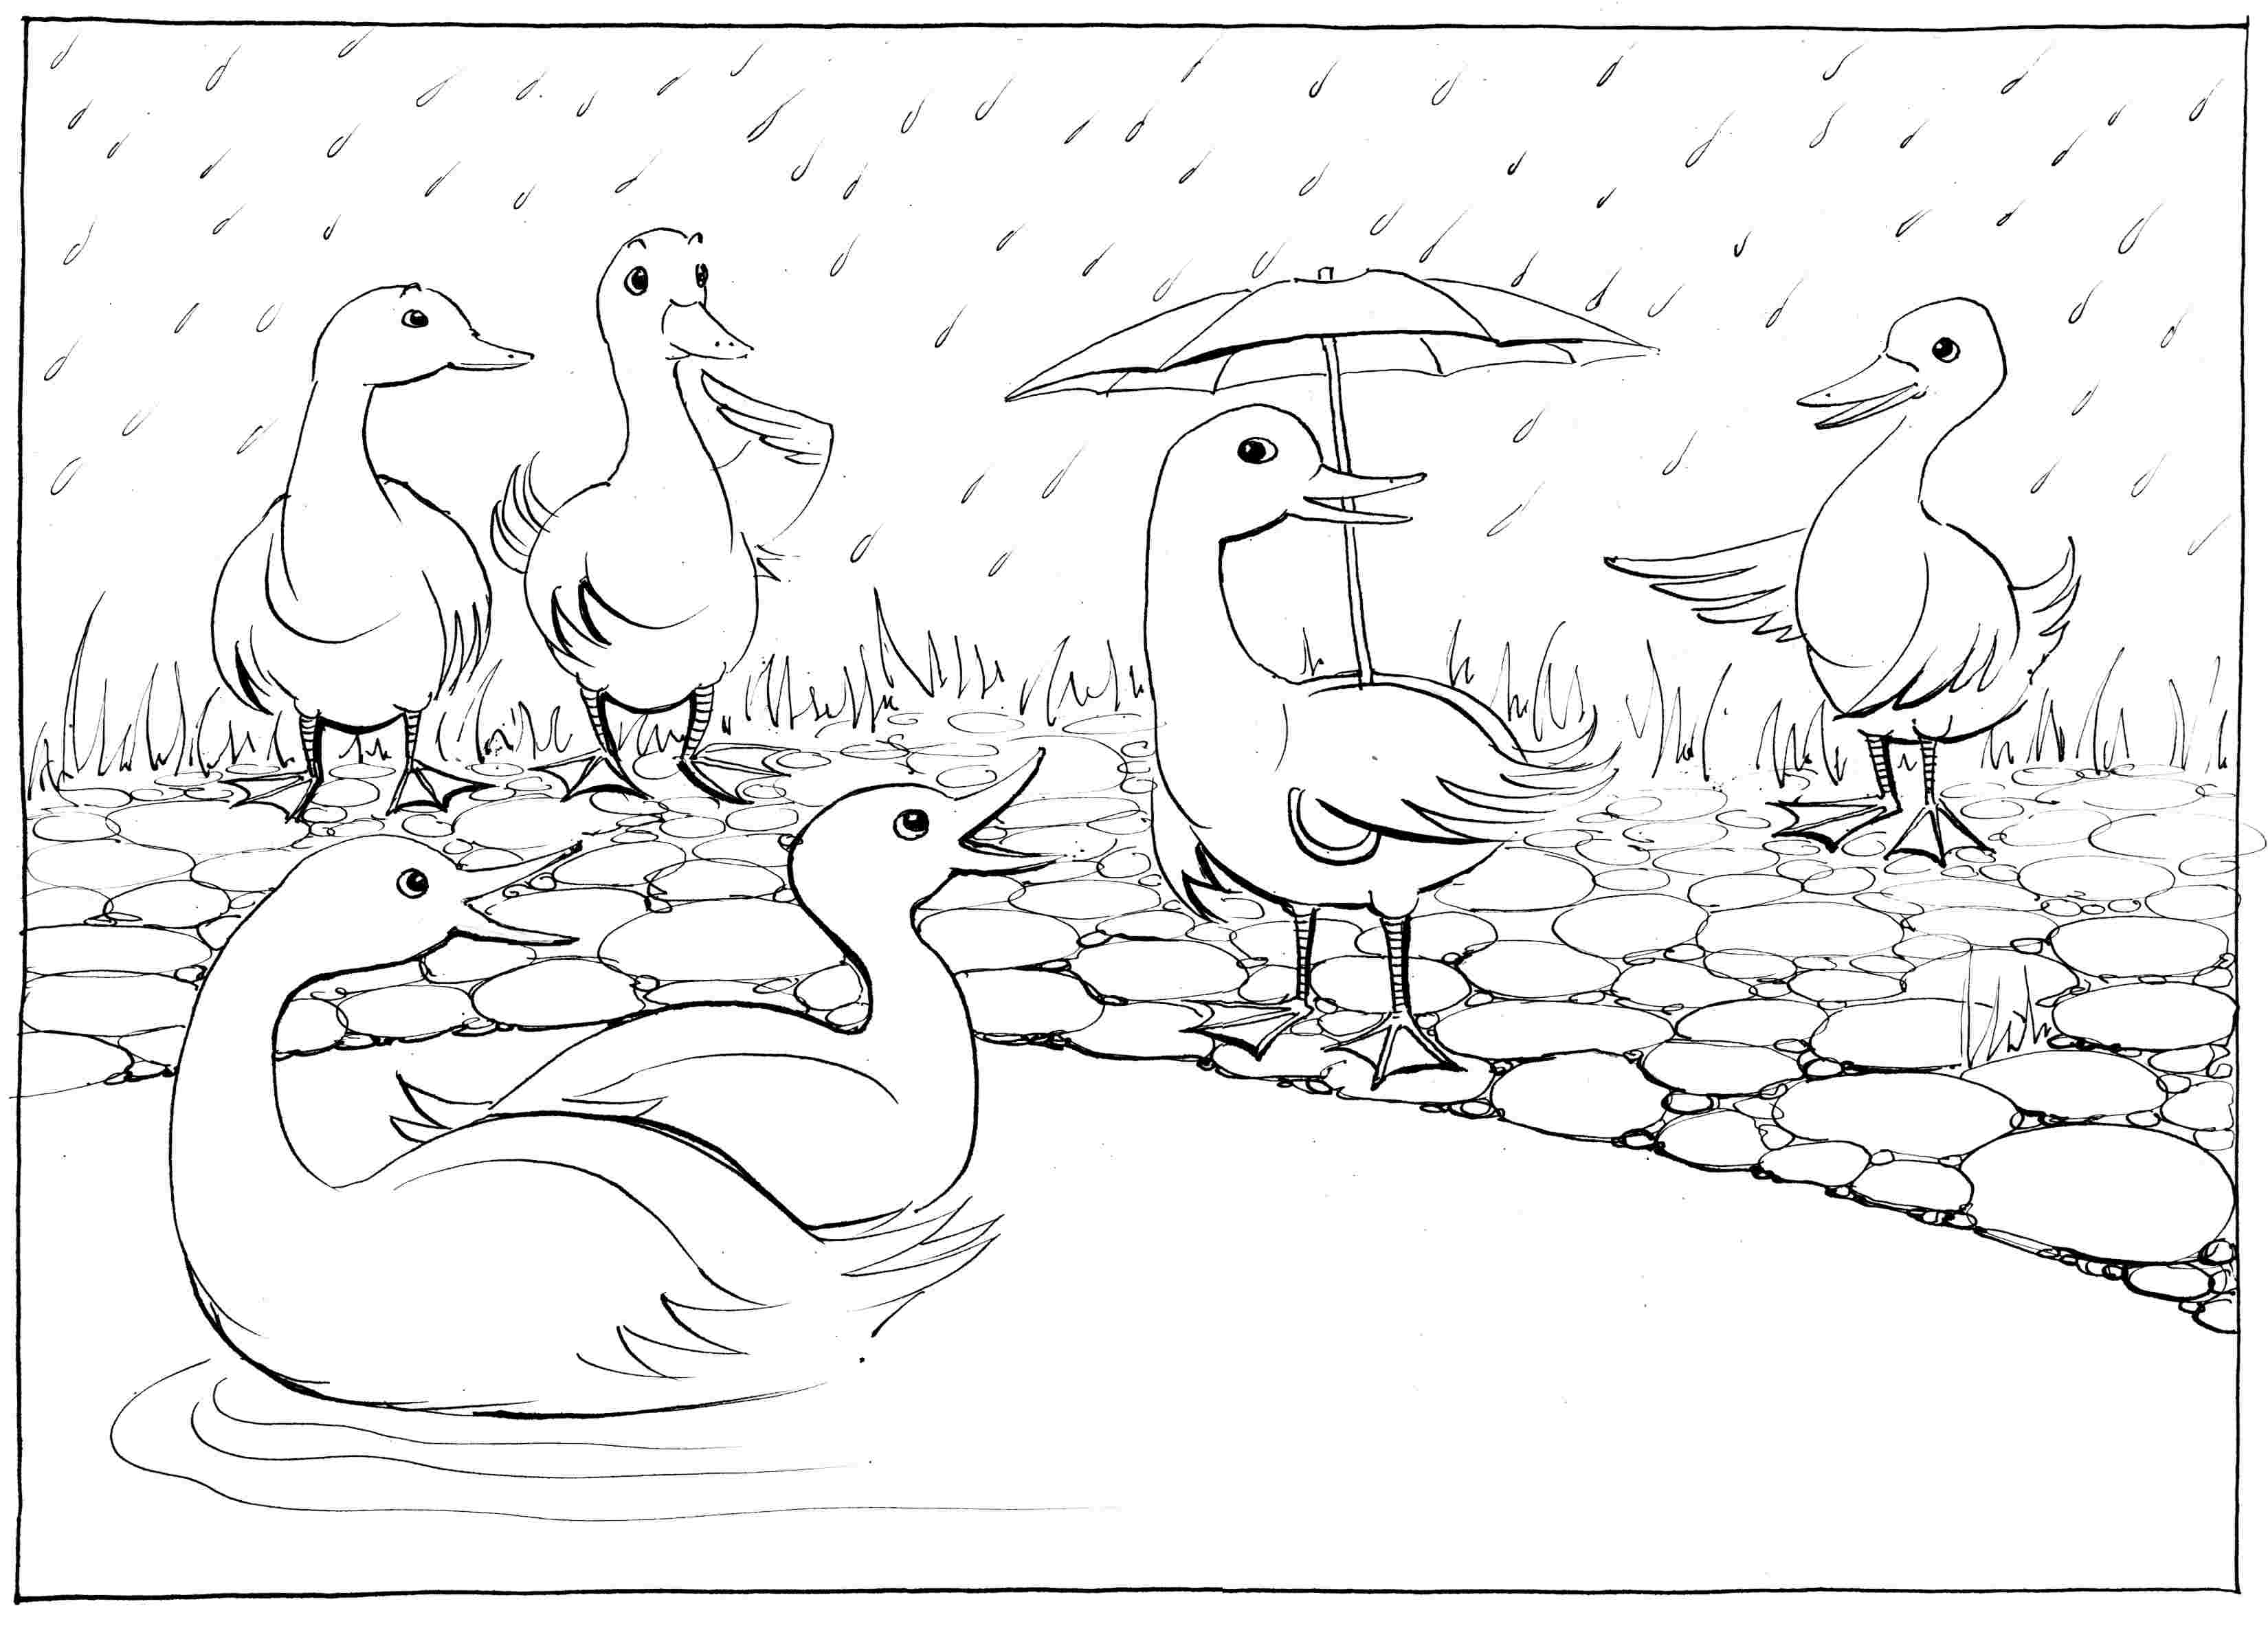 Water-Shy - colouring-in drawing - to download, right click and save, print out and colour in!